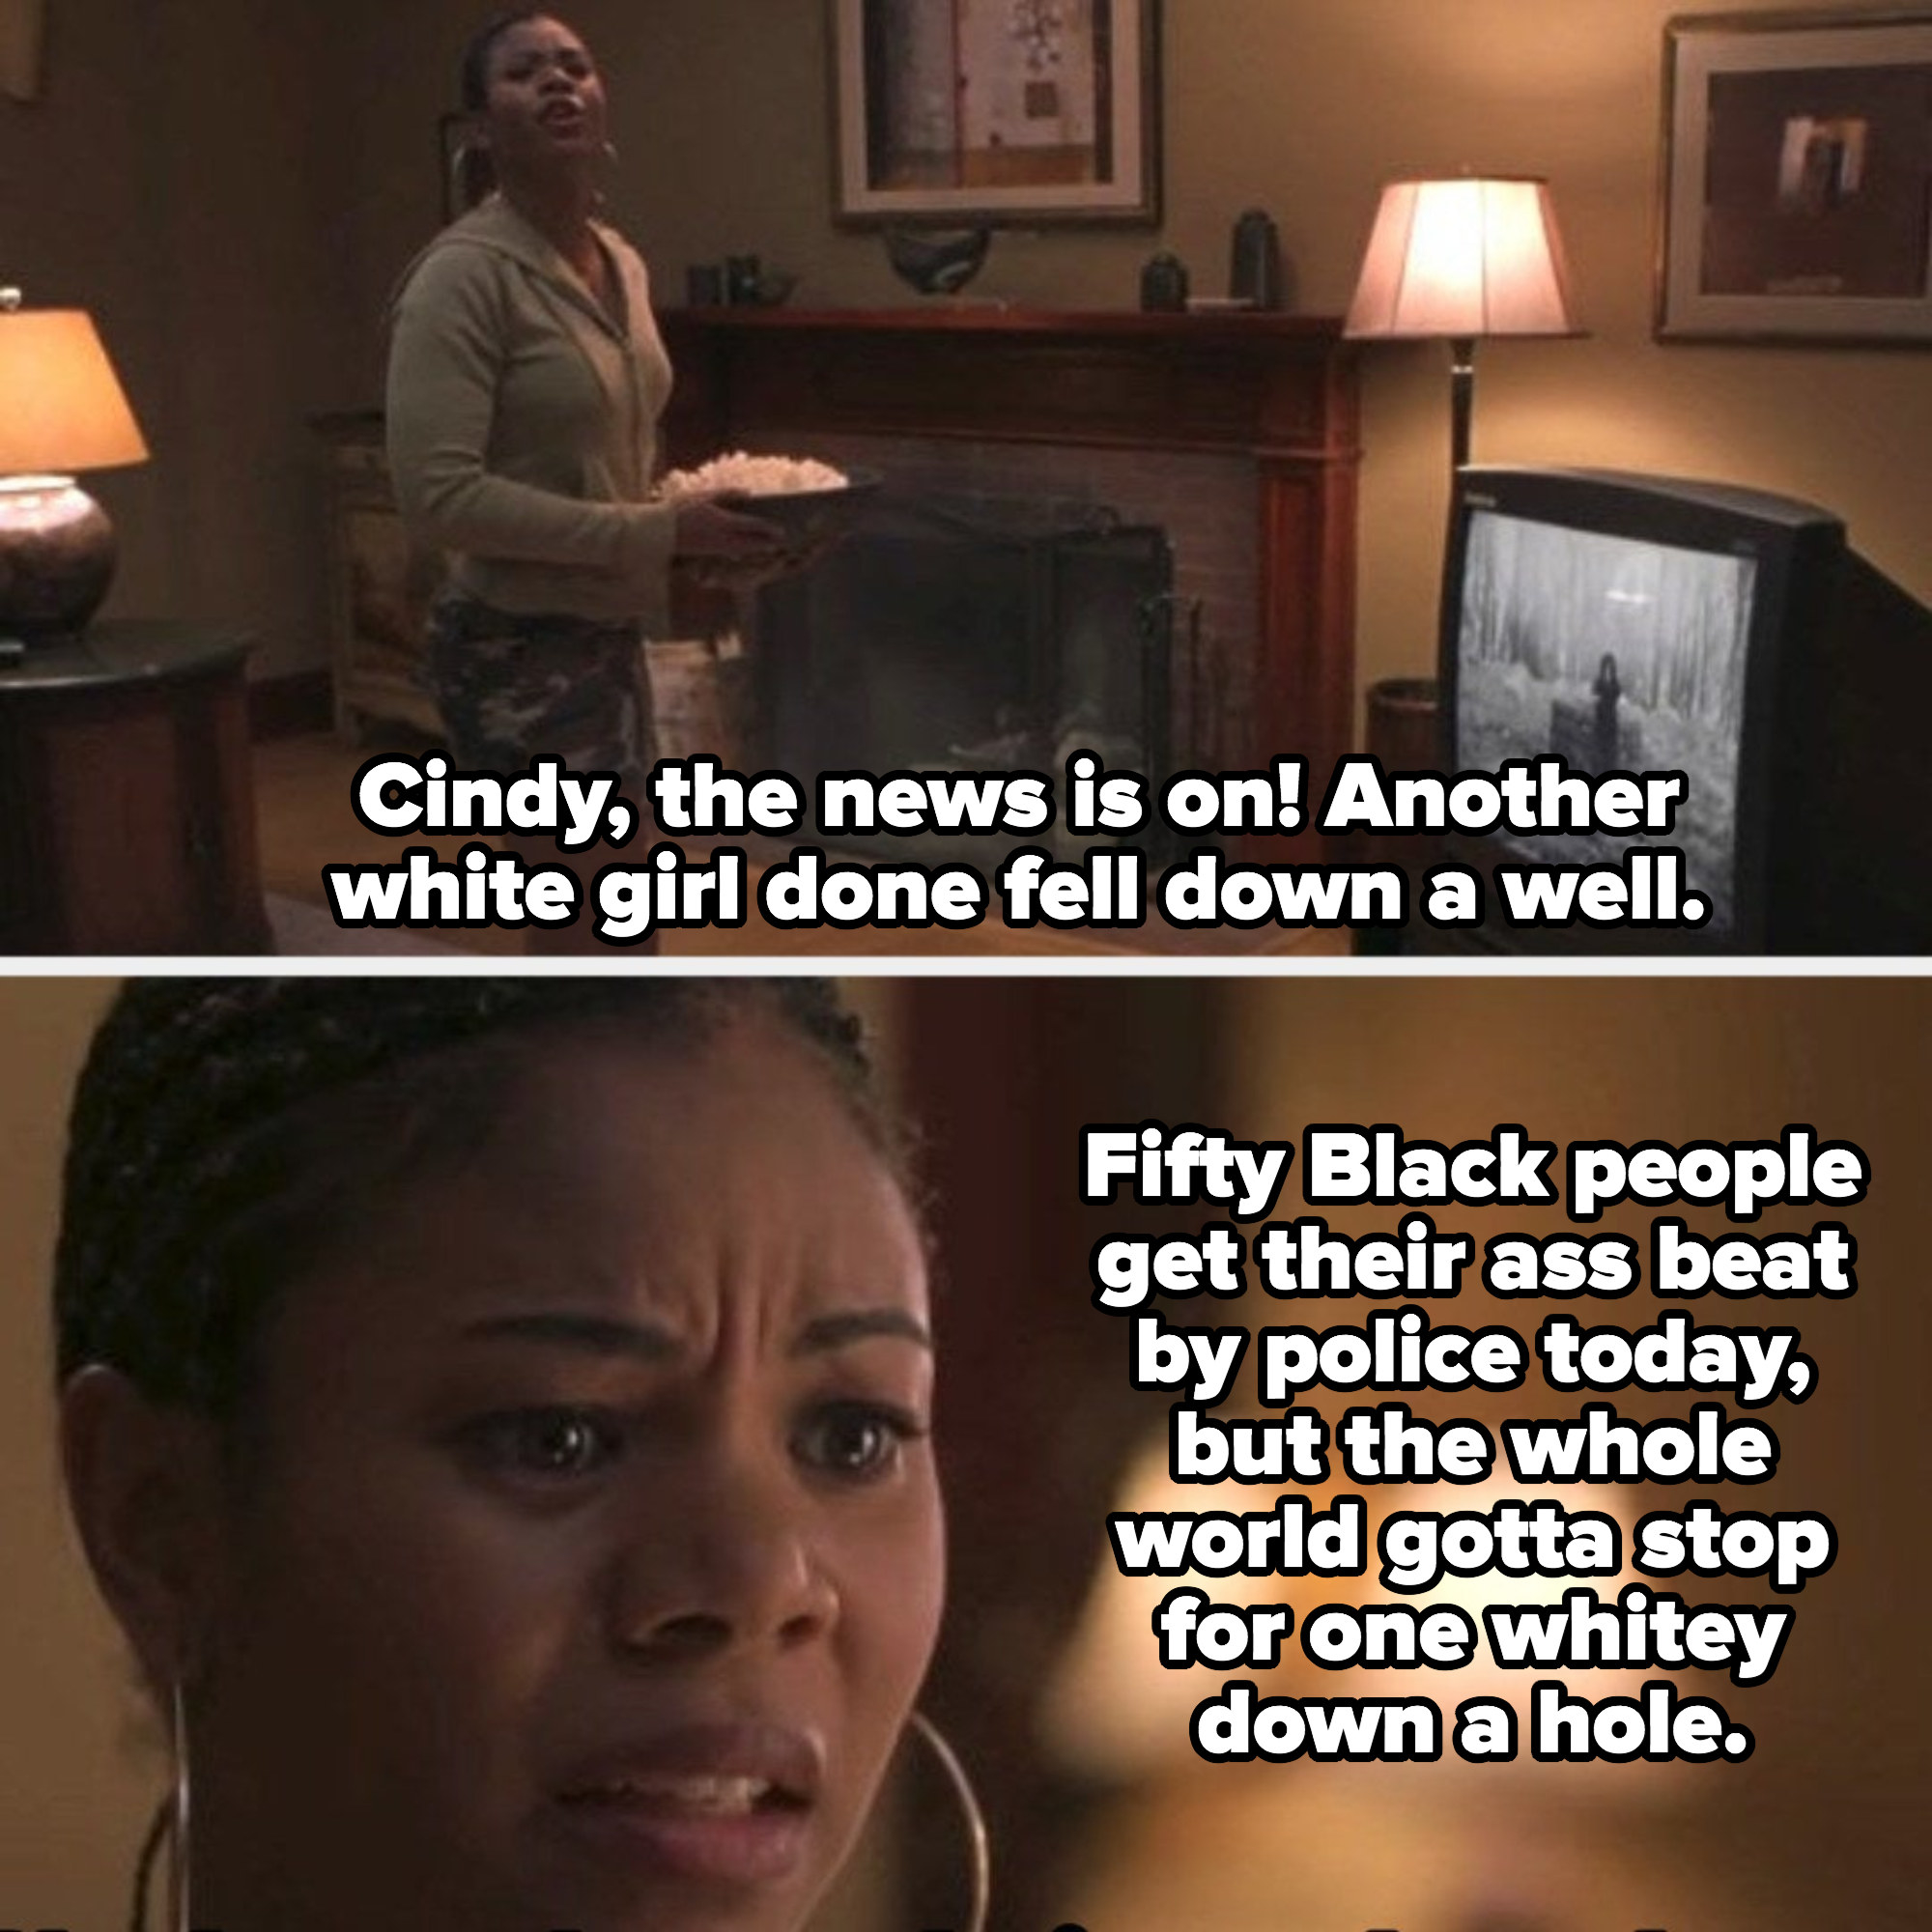 Brenda calling for Cindy while watching the news on TV about white girls falling down a well